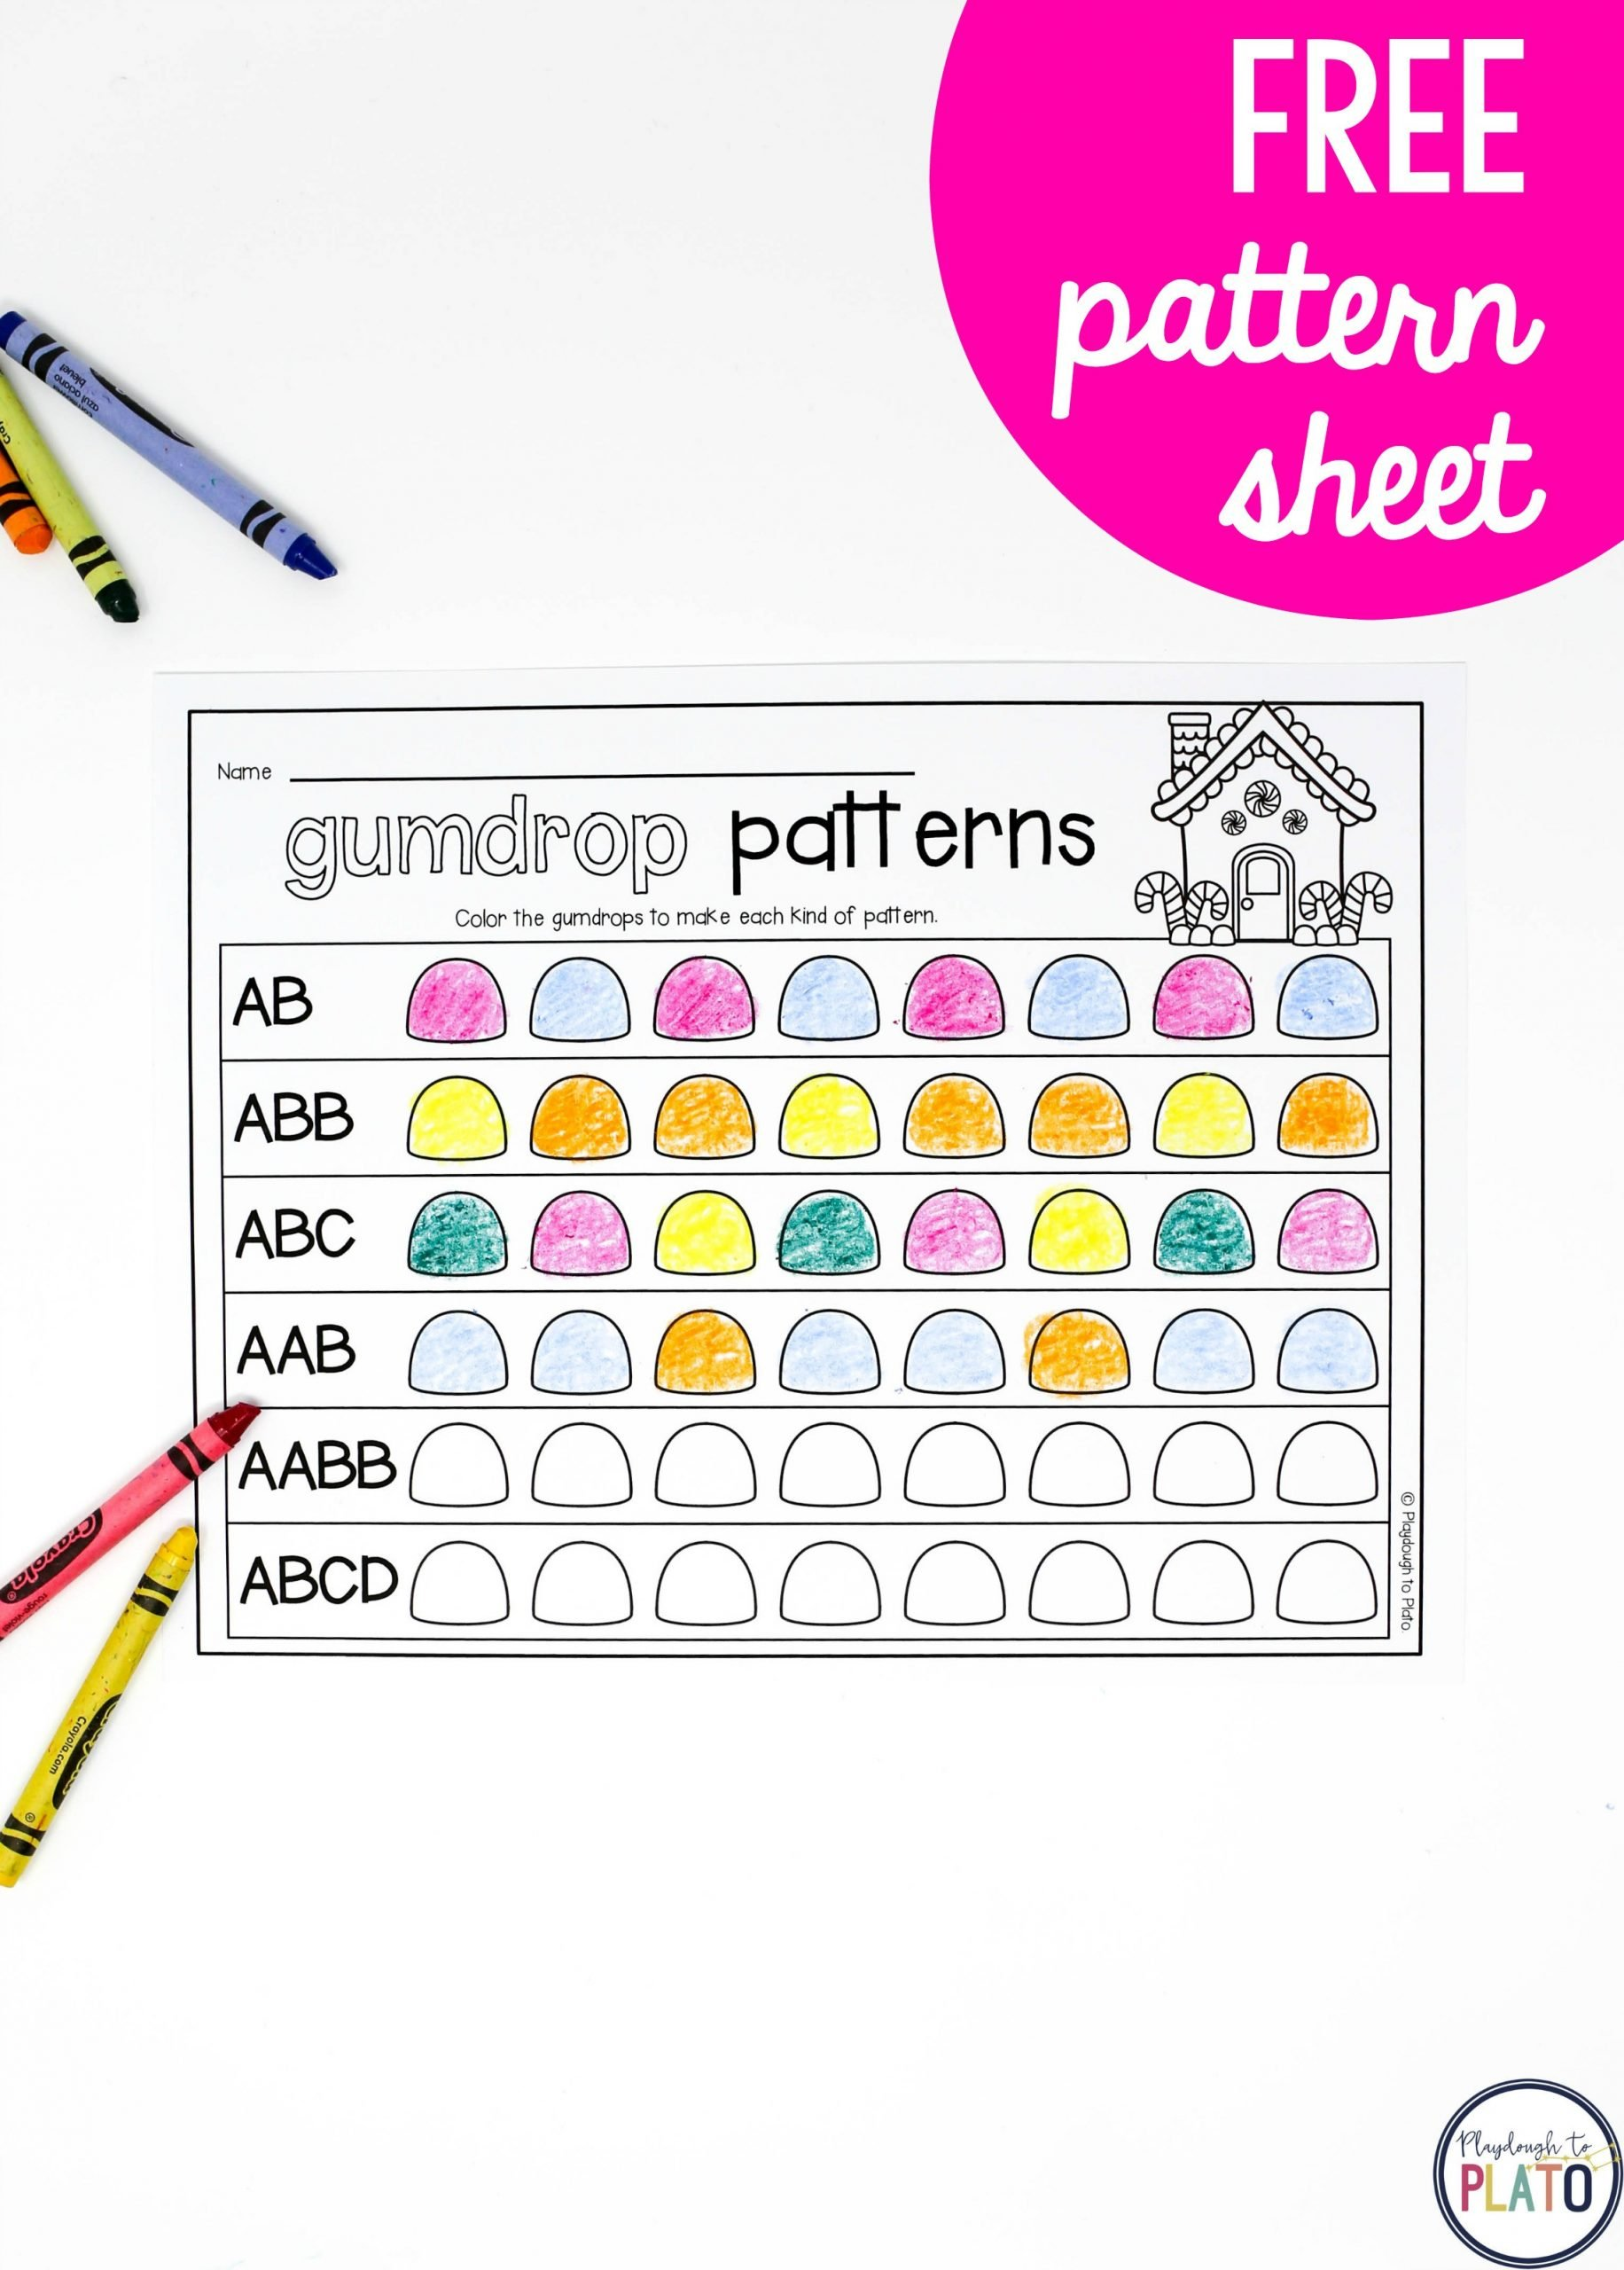 Free gumdrop pattern sheet for kids 6961